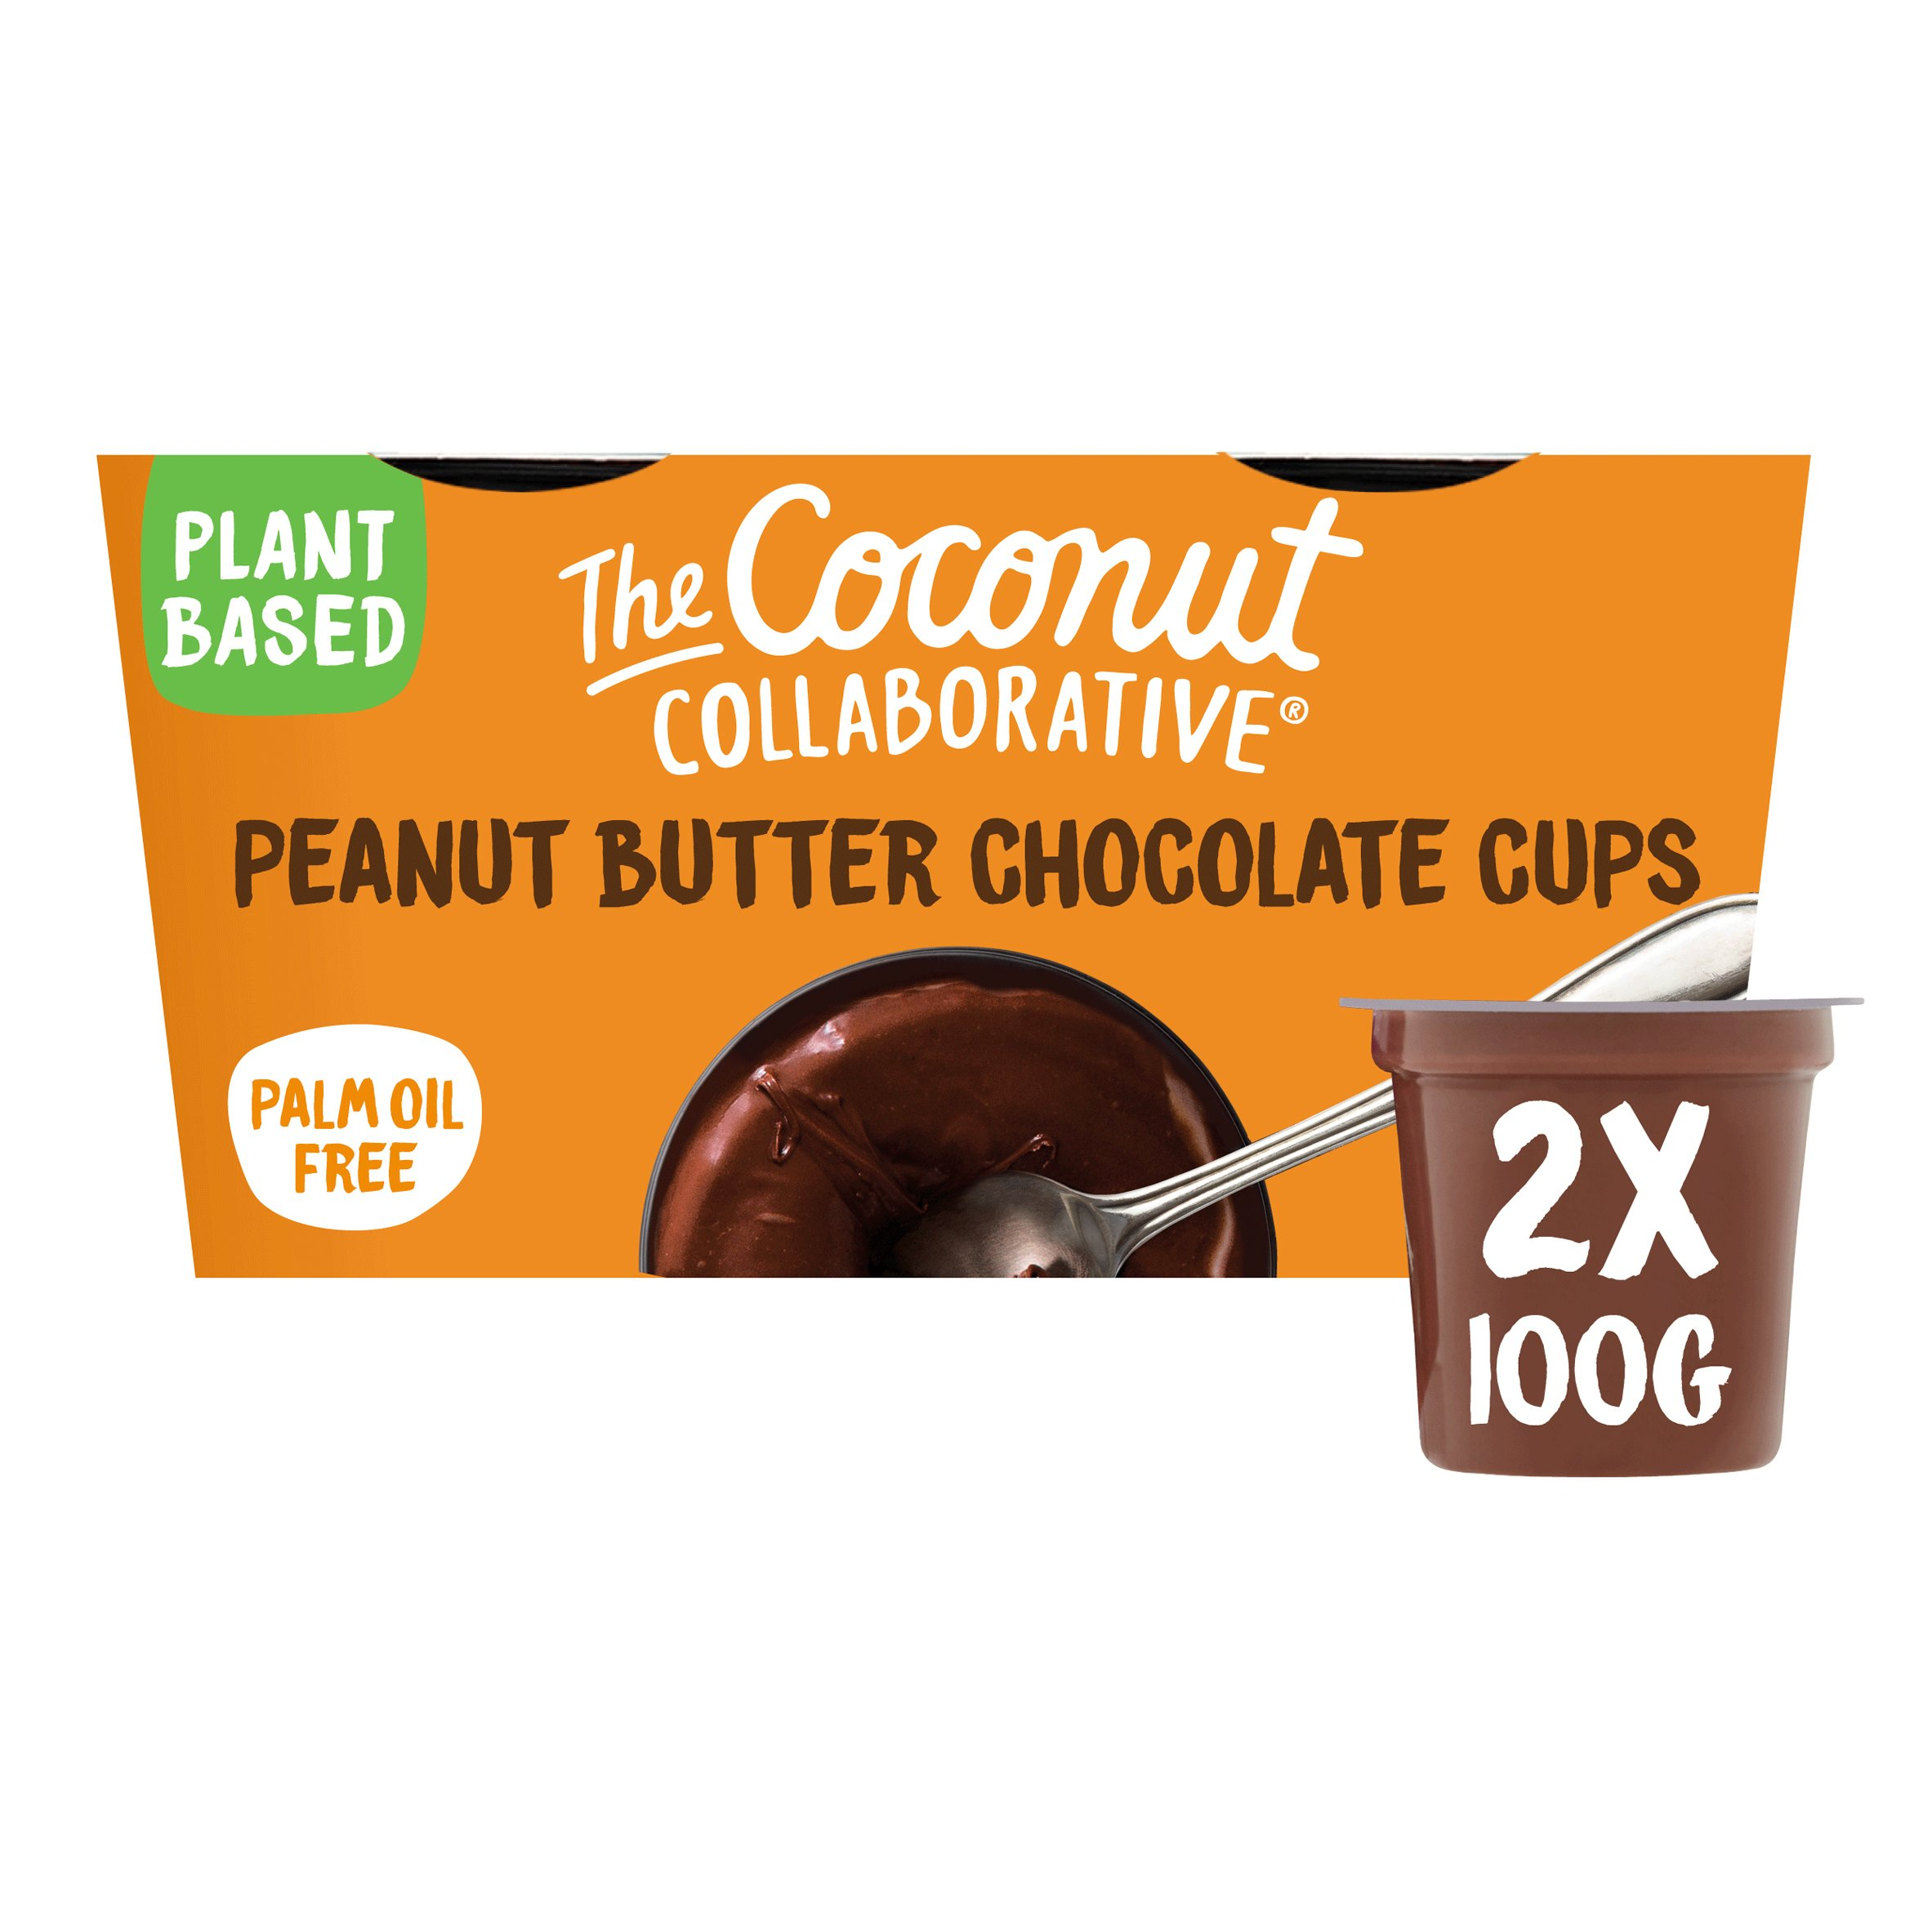 The Coconut Collaborative Peanut Butter Chocolate Cups 2X100g